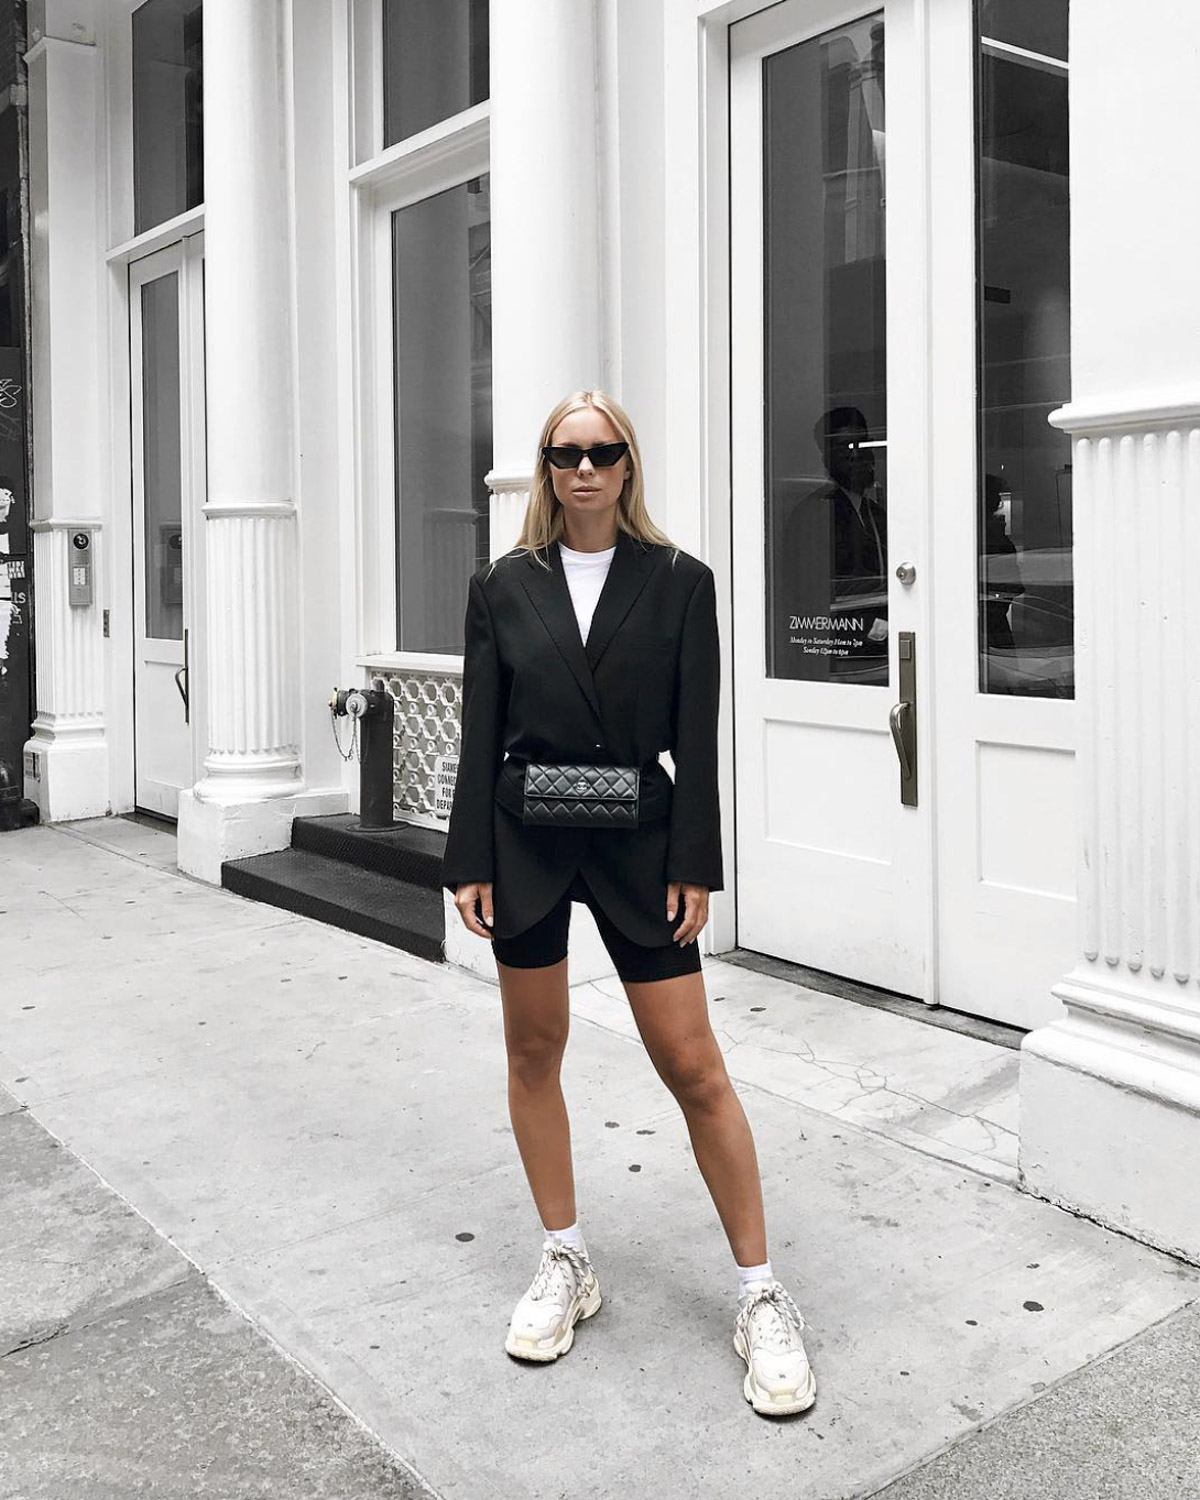 Trend Report: Radlerhosen / Cycling Shorts | love daily dose